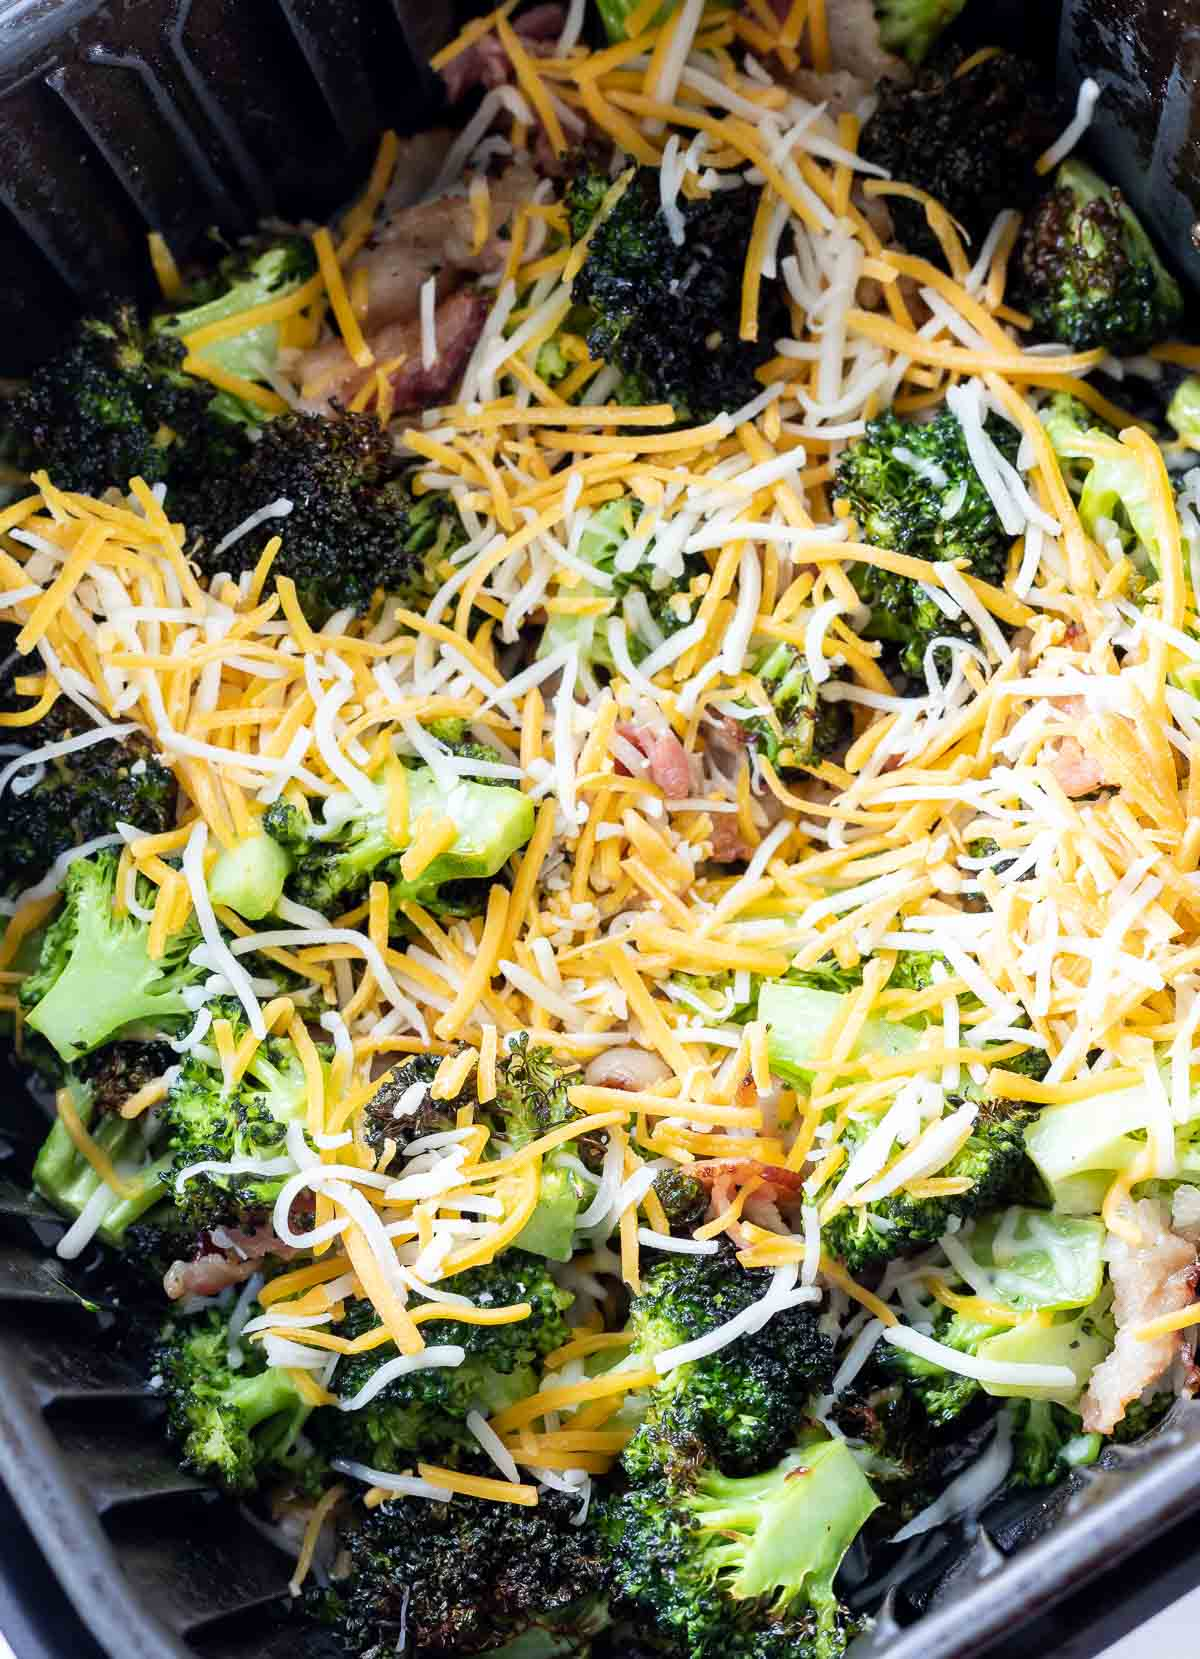 partially cooked broccoli topped with shredded cheese